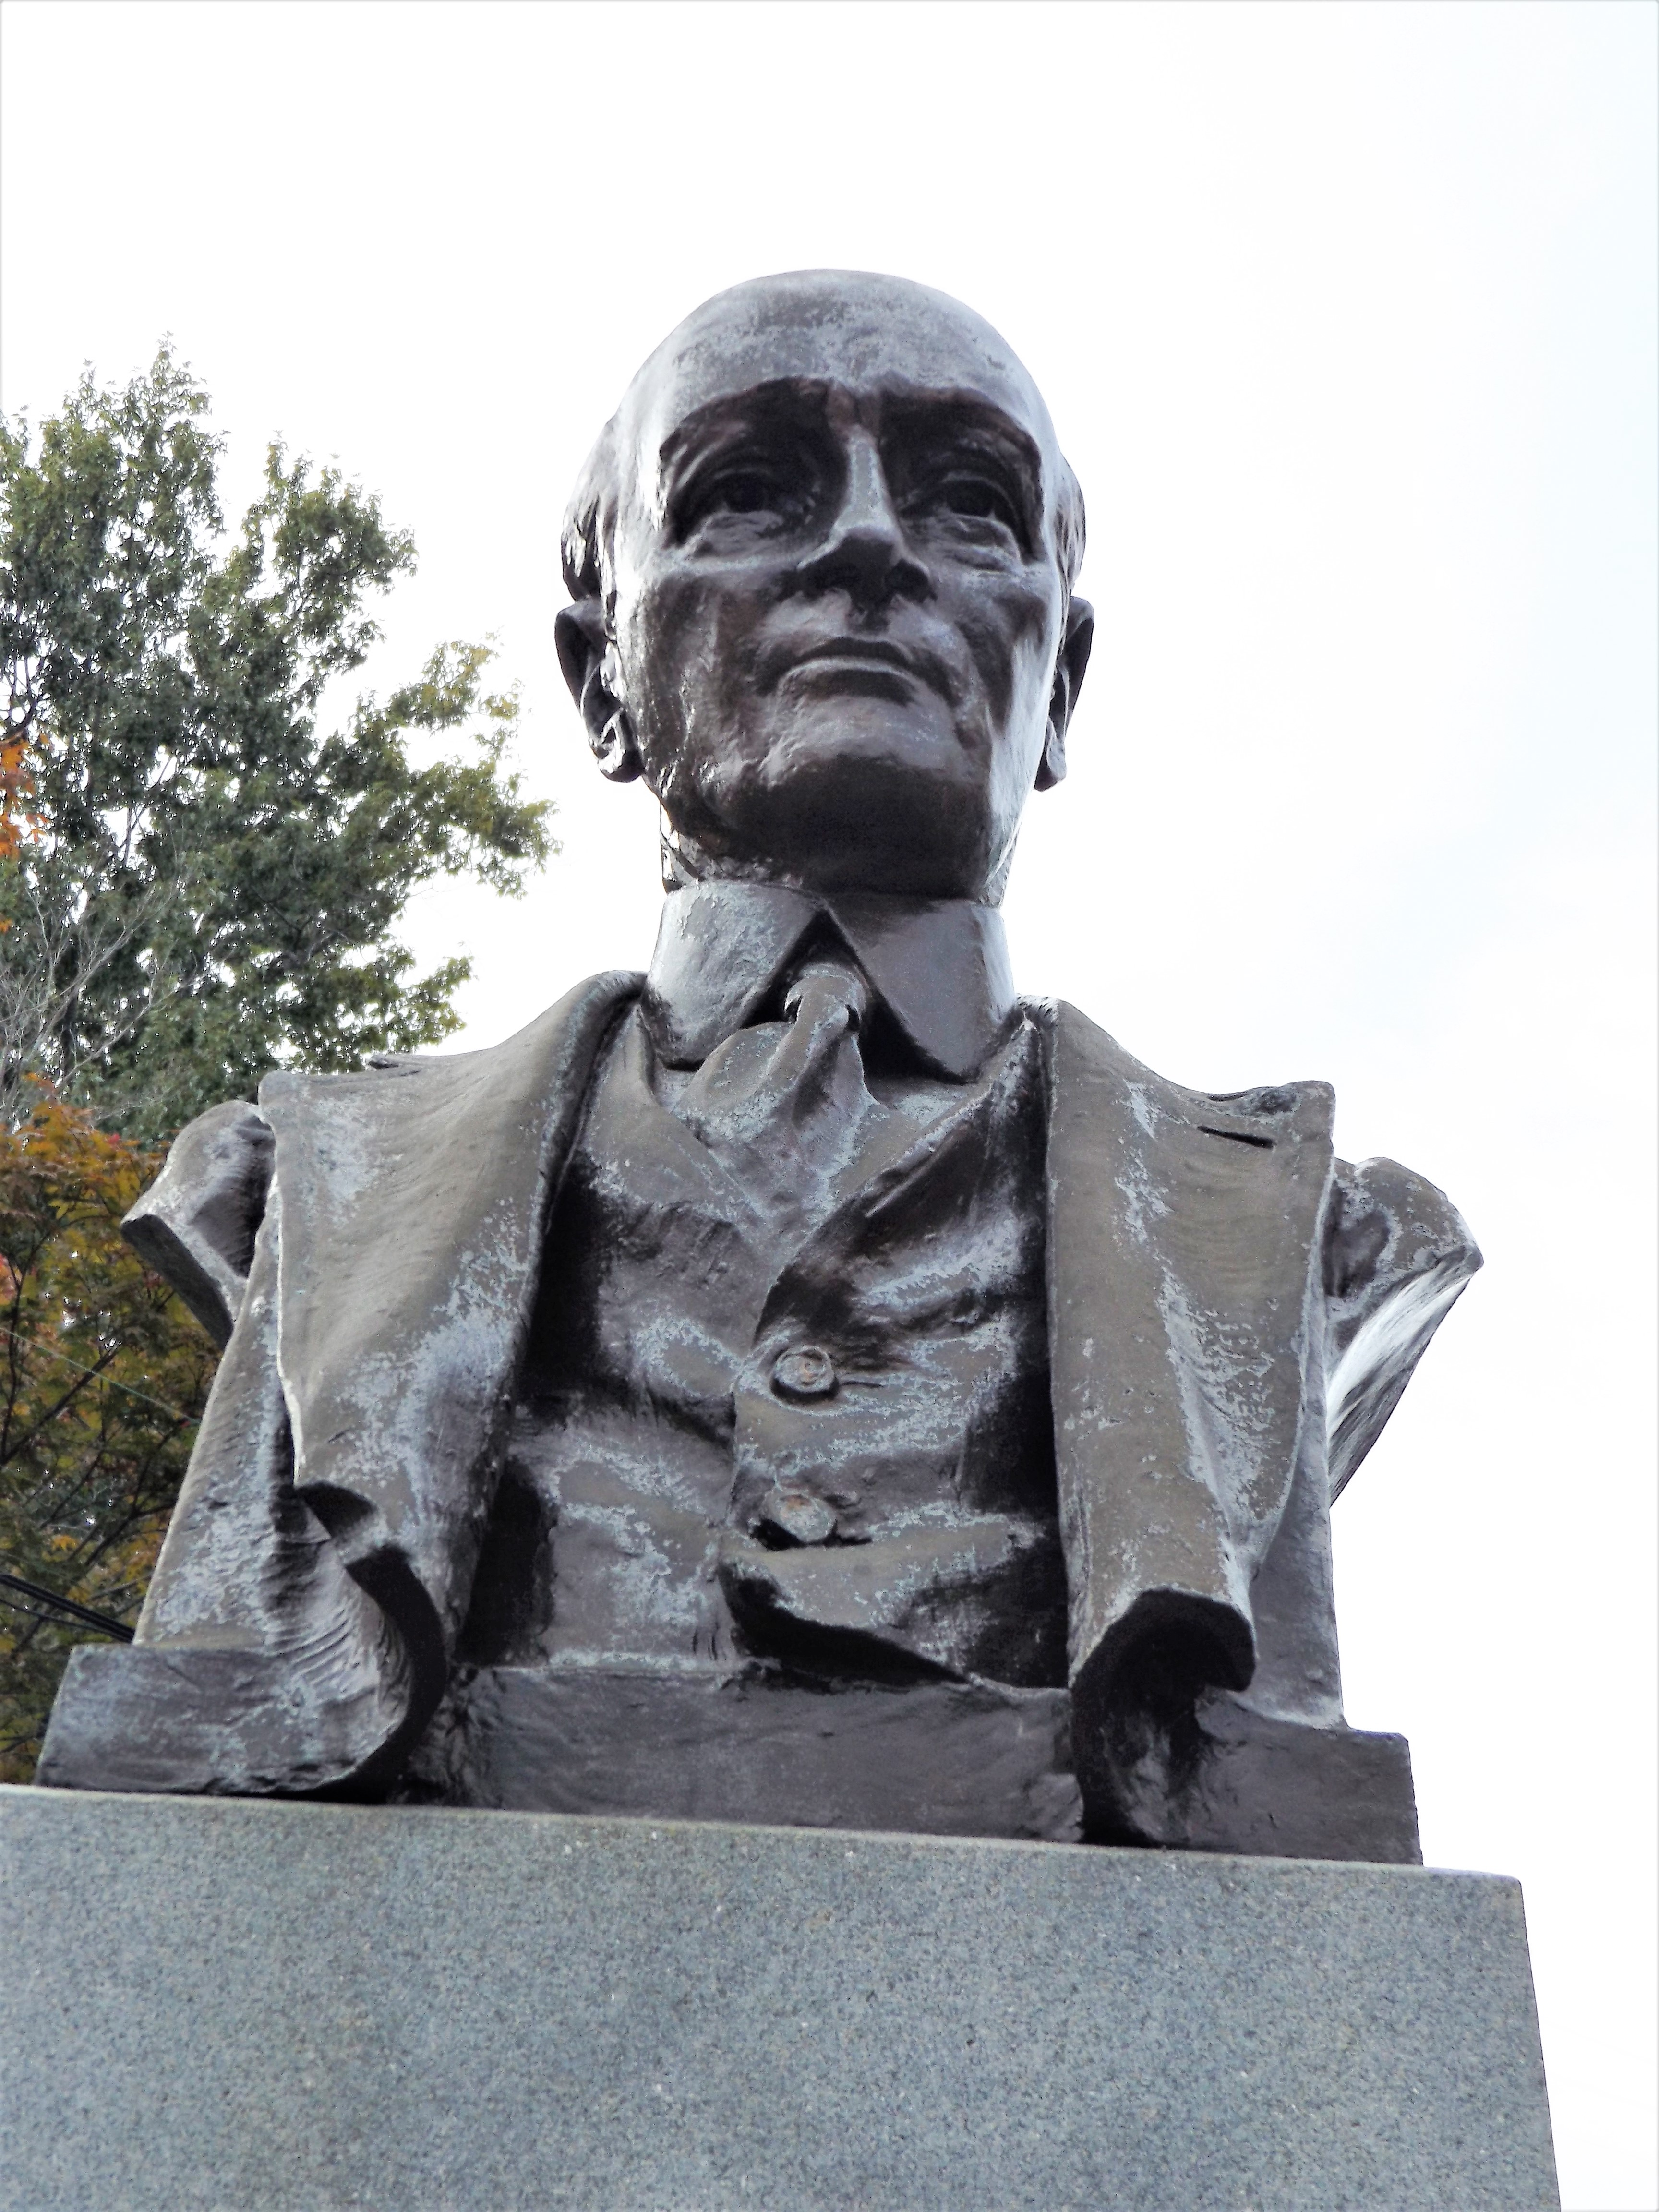 Selected Quotes From Félix Gatineau About Life in Southbridge